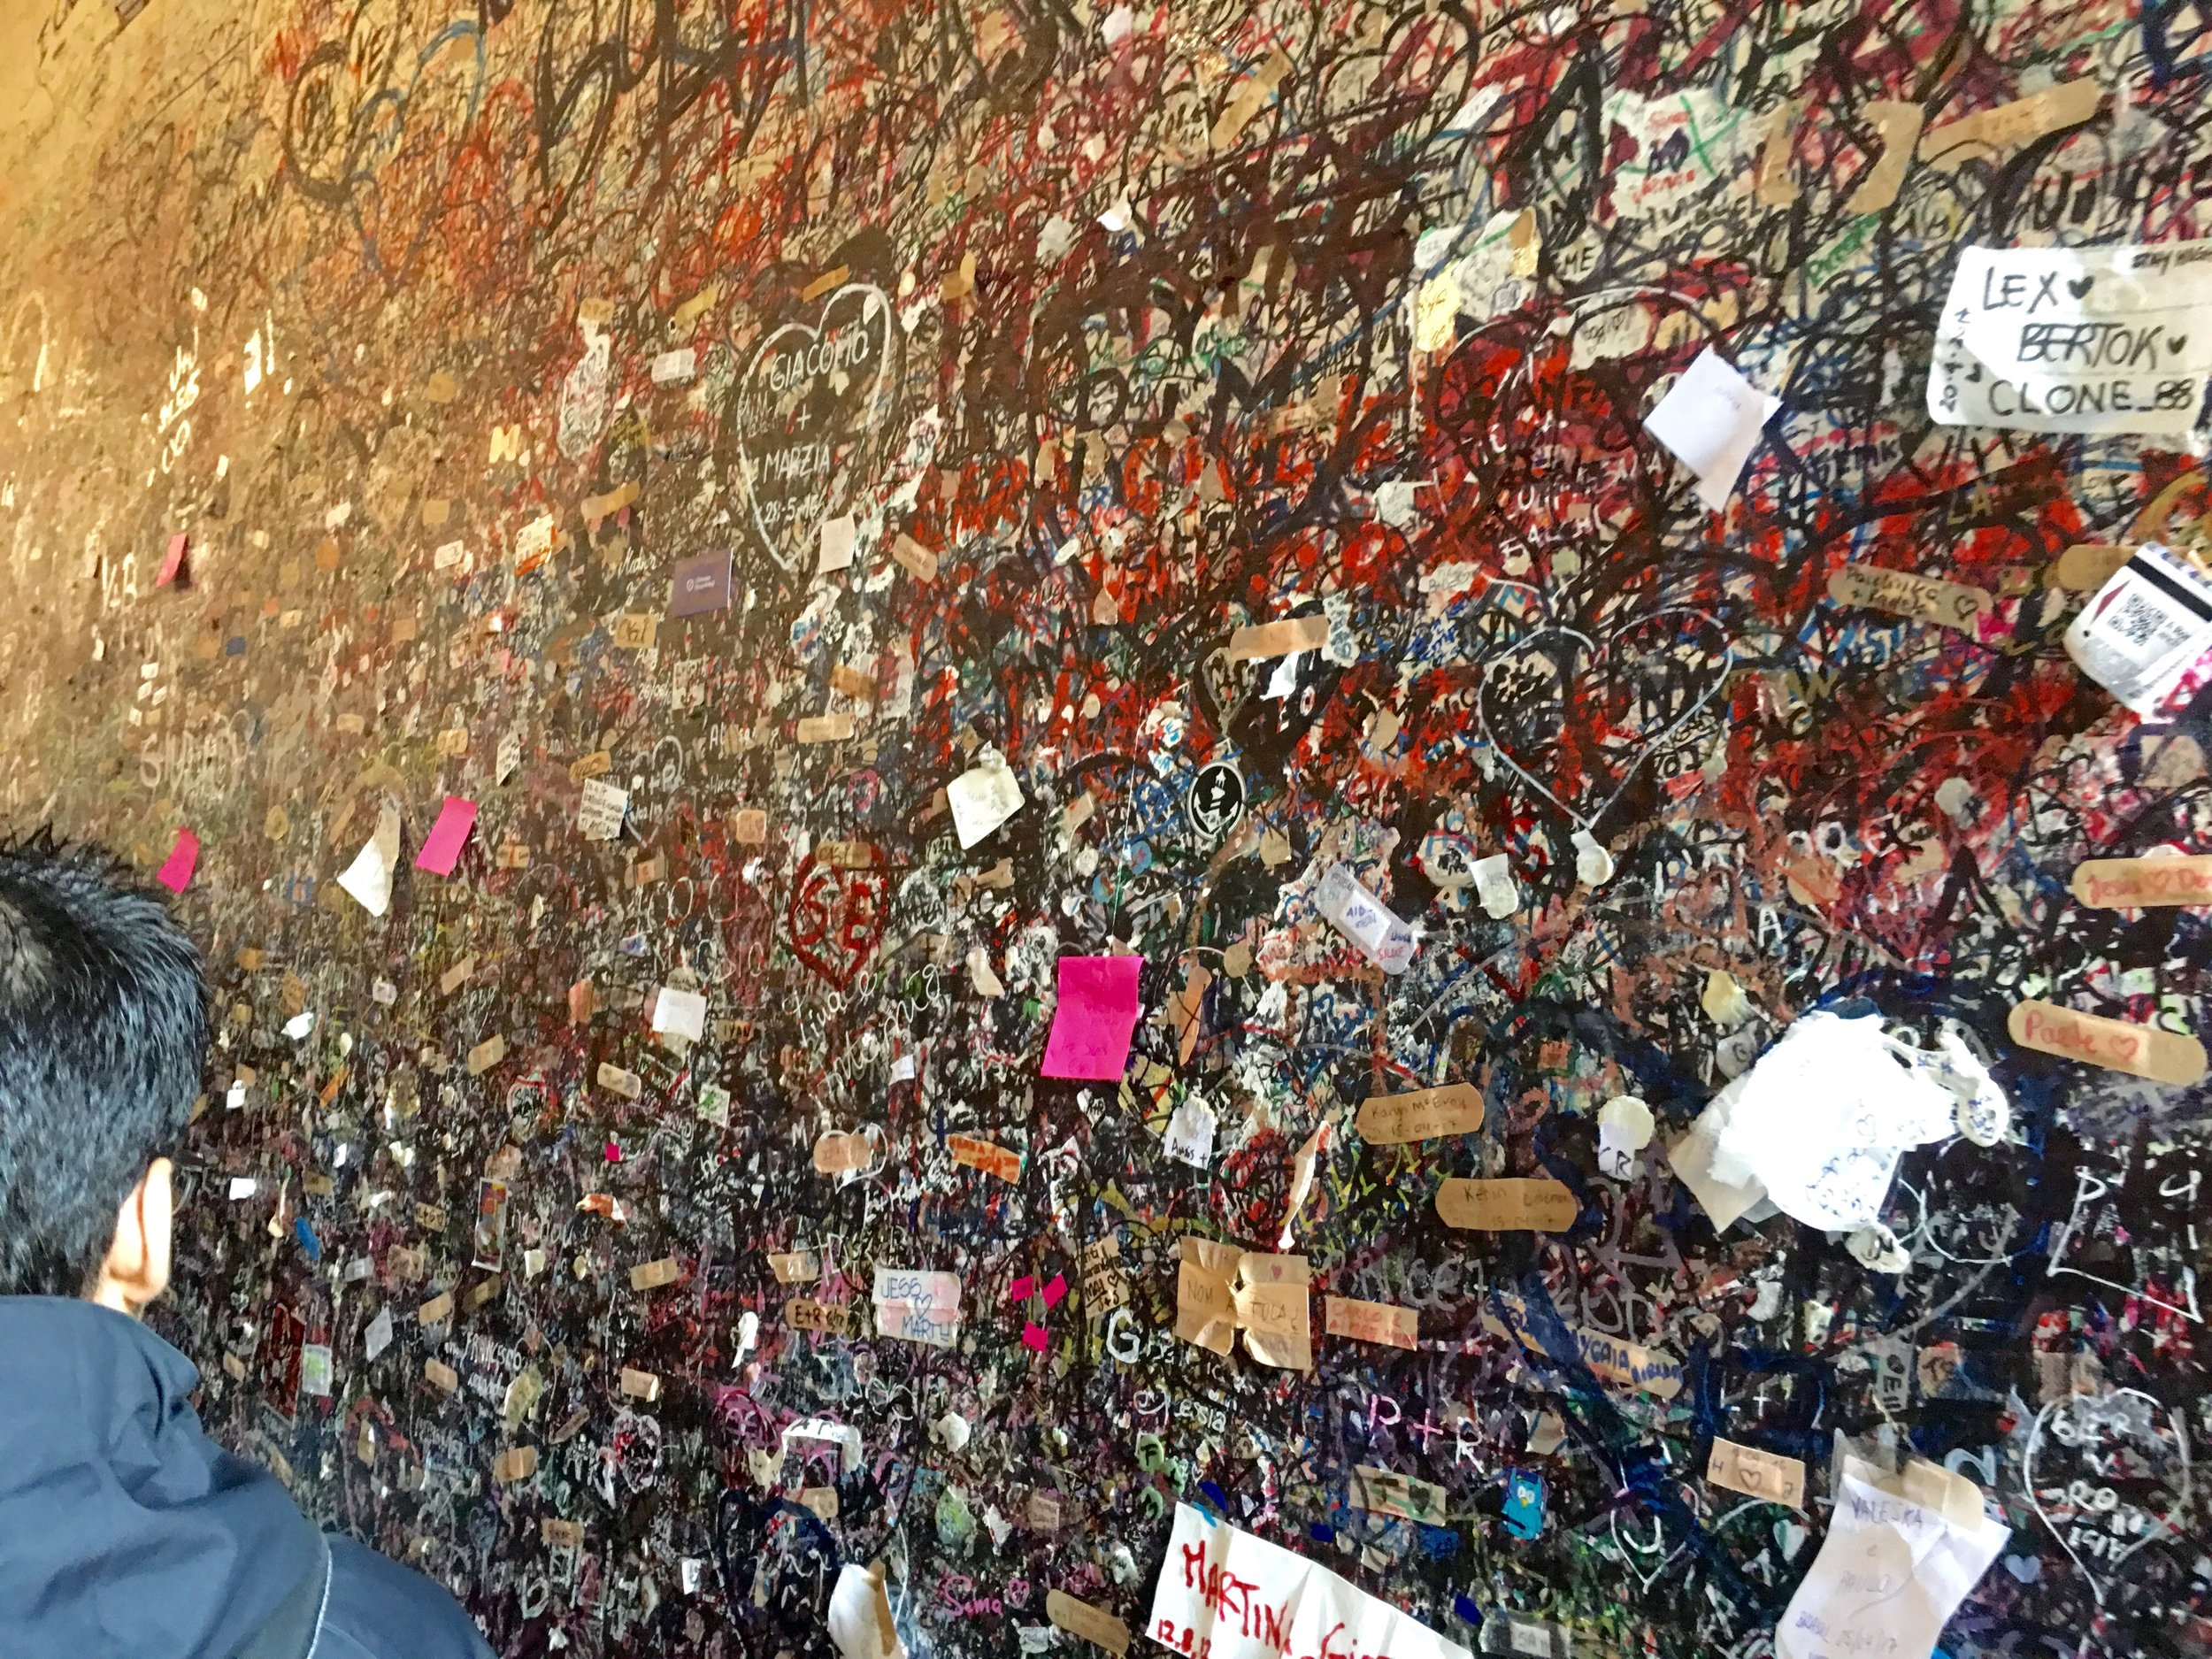 Lovers have written notes until the wall has turned black. Now the love notes require a post-it note or a band-aid.